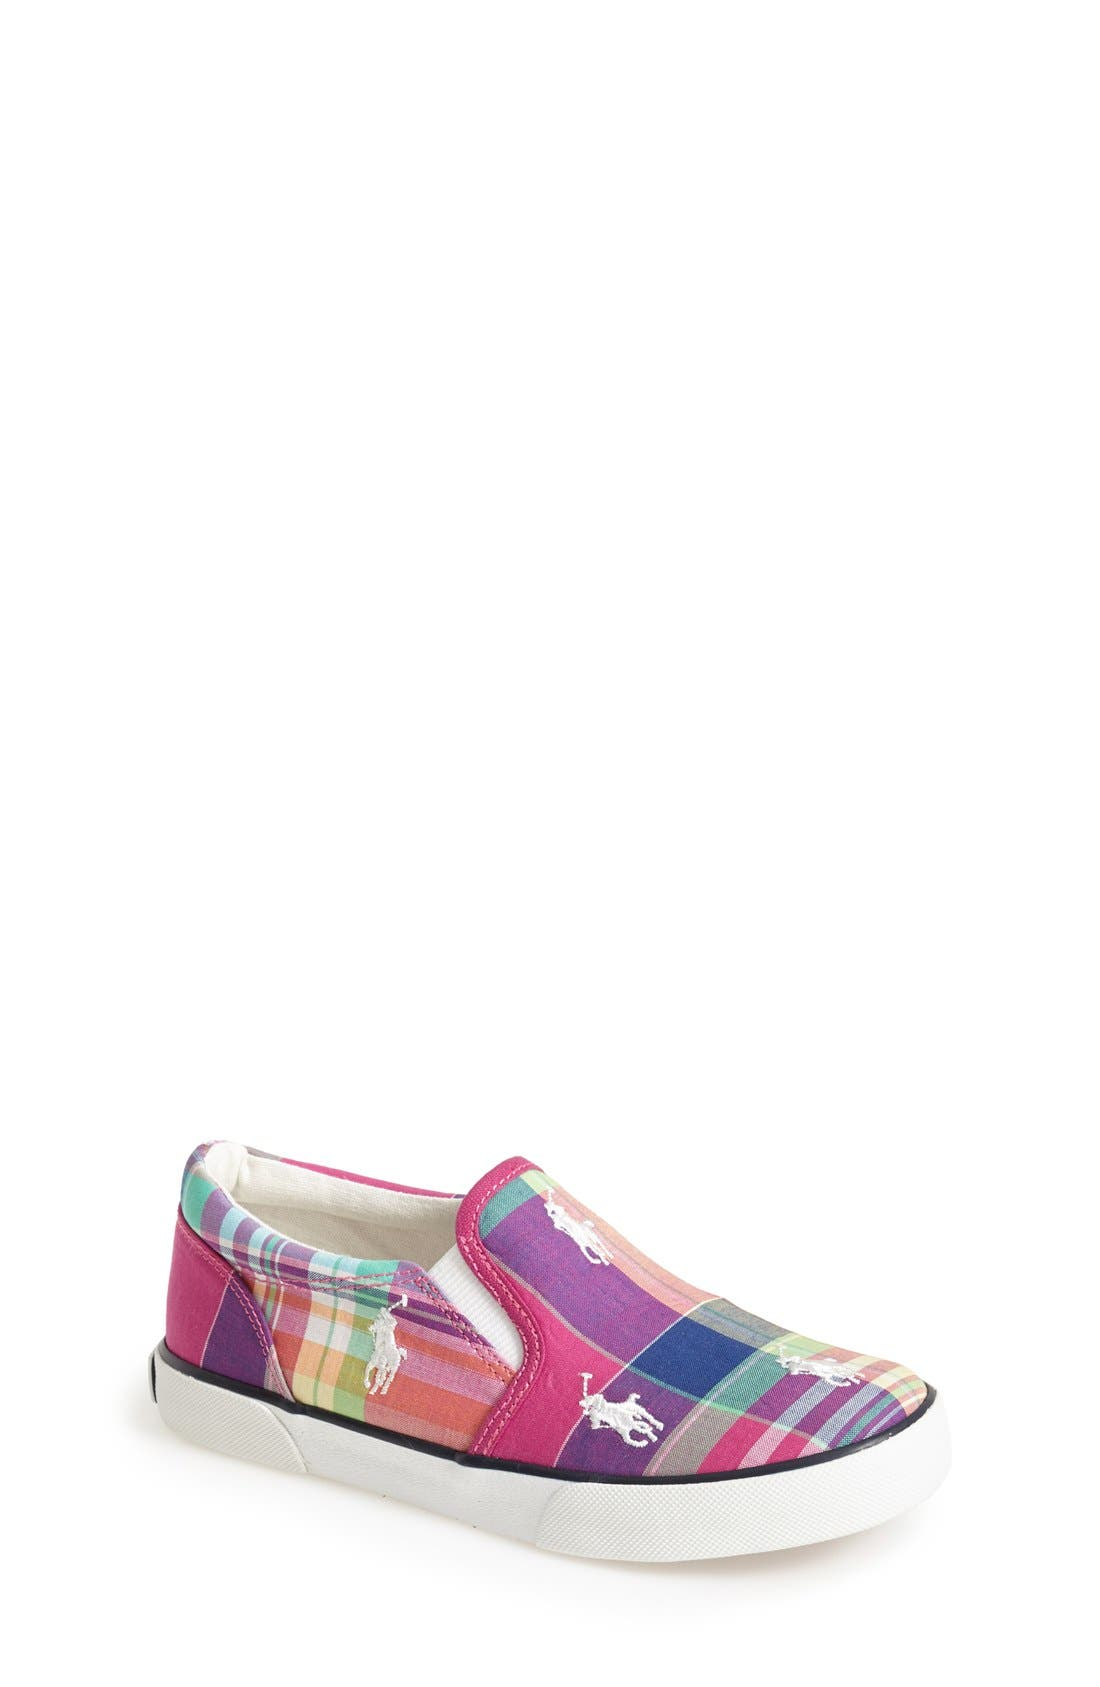 Main Image - Ralph Lauren Plaid Sneaker (Baby, Walker, Toddler & Little Kid)